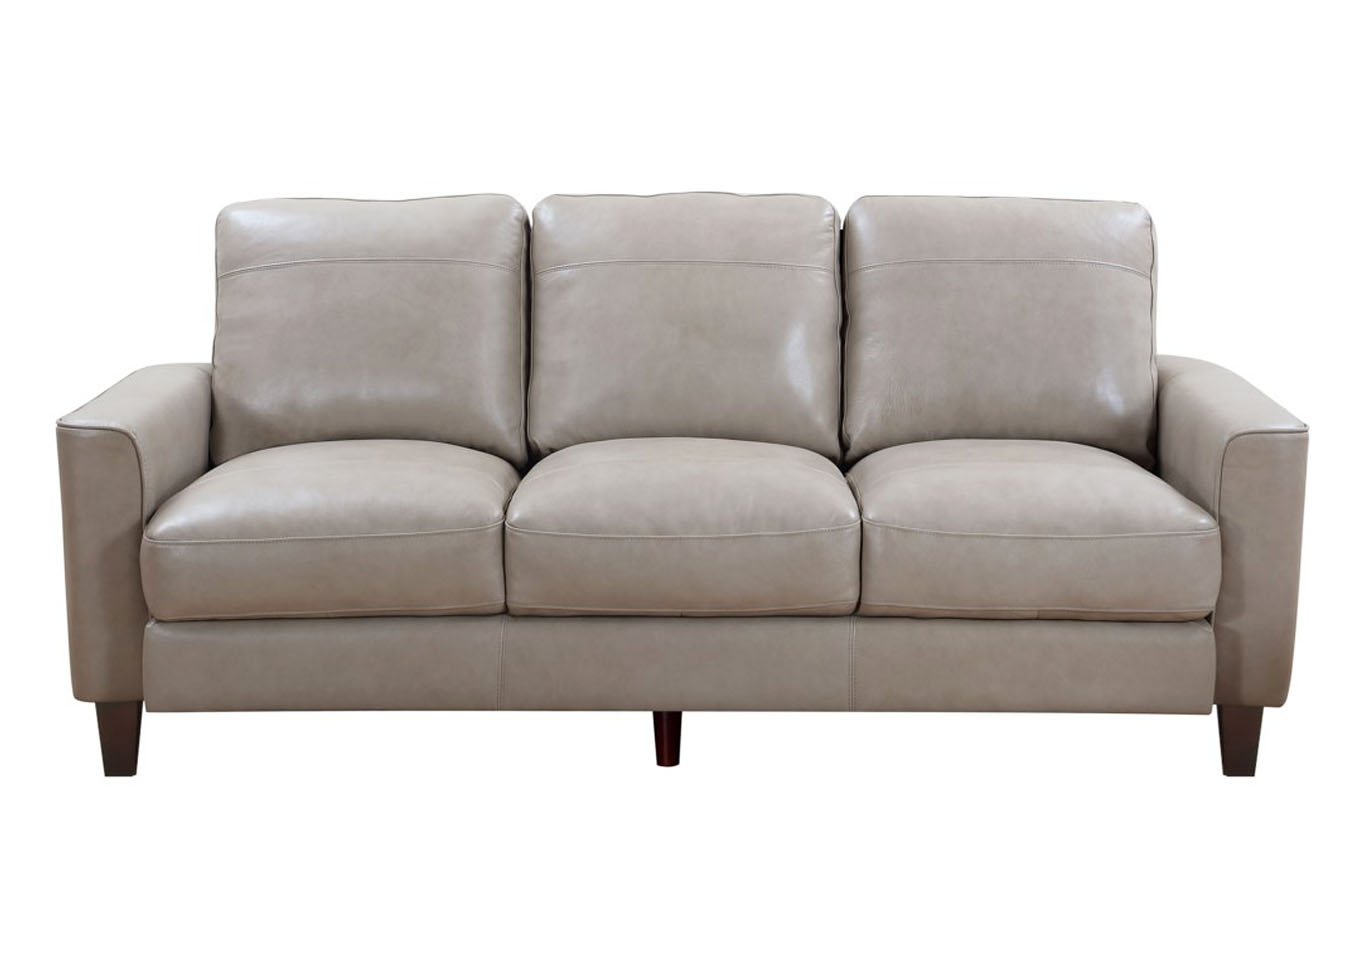 Chino Top Grain Leather Sofa - Beige,Instore